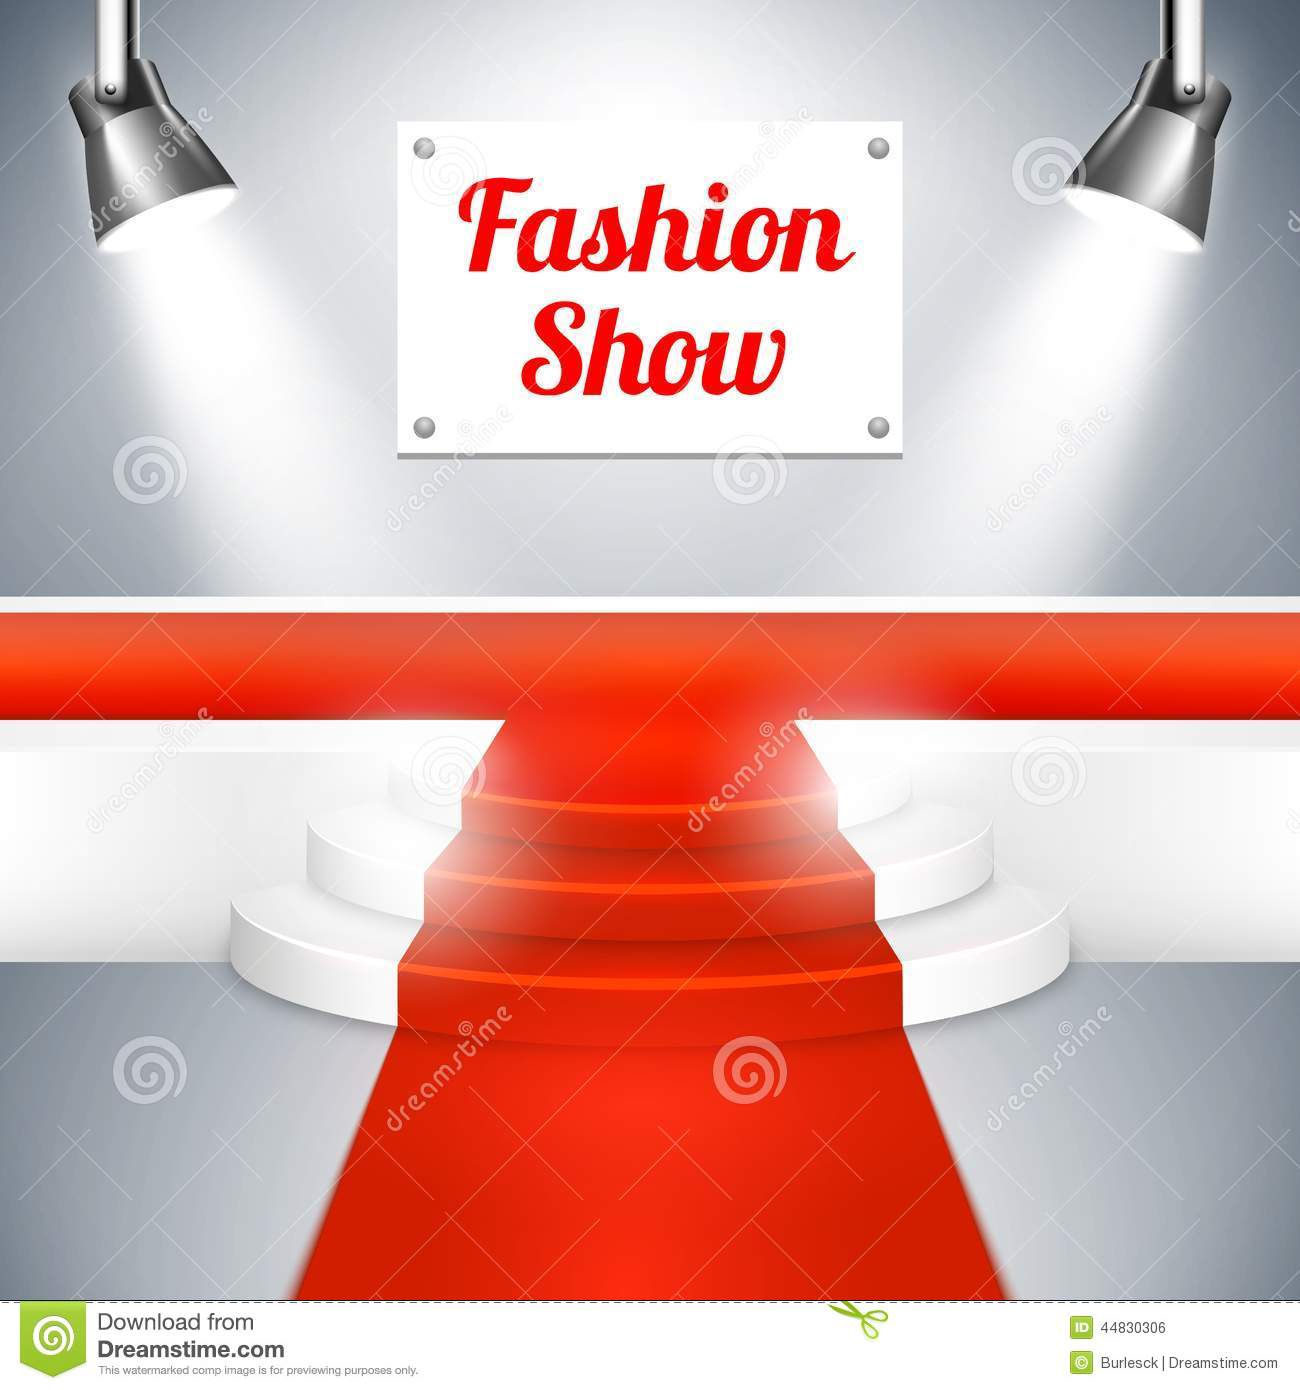 Fashion Show Catwalk With A Red Carpet Stock Vector